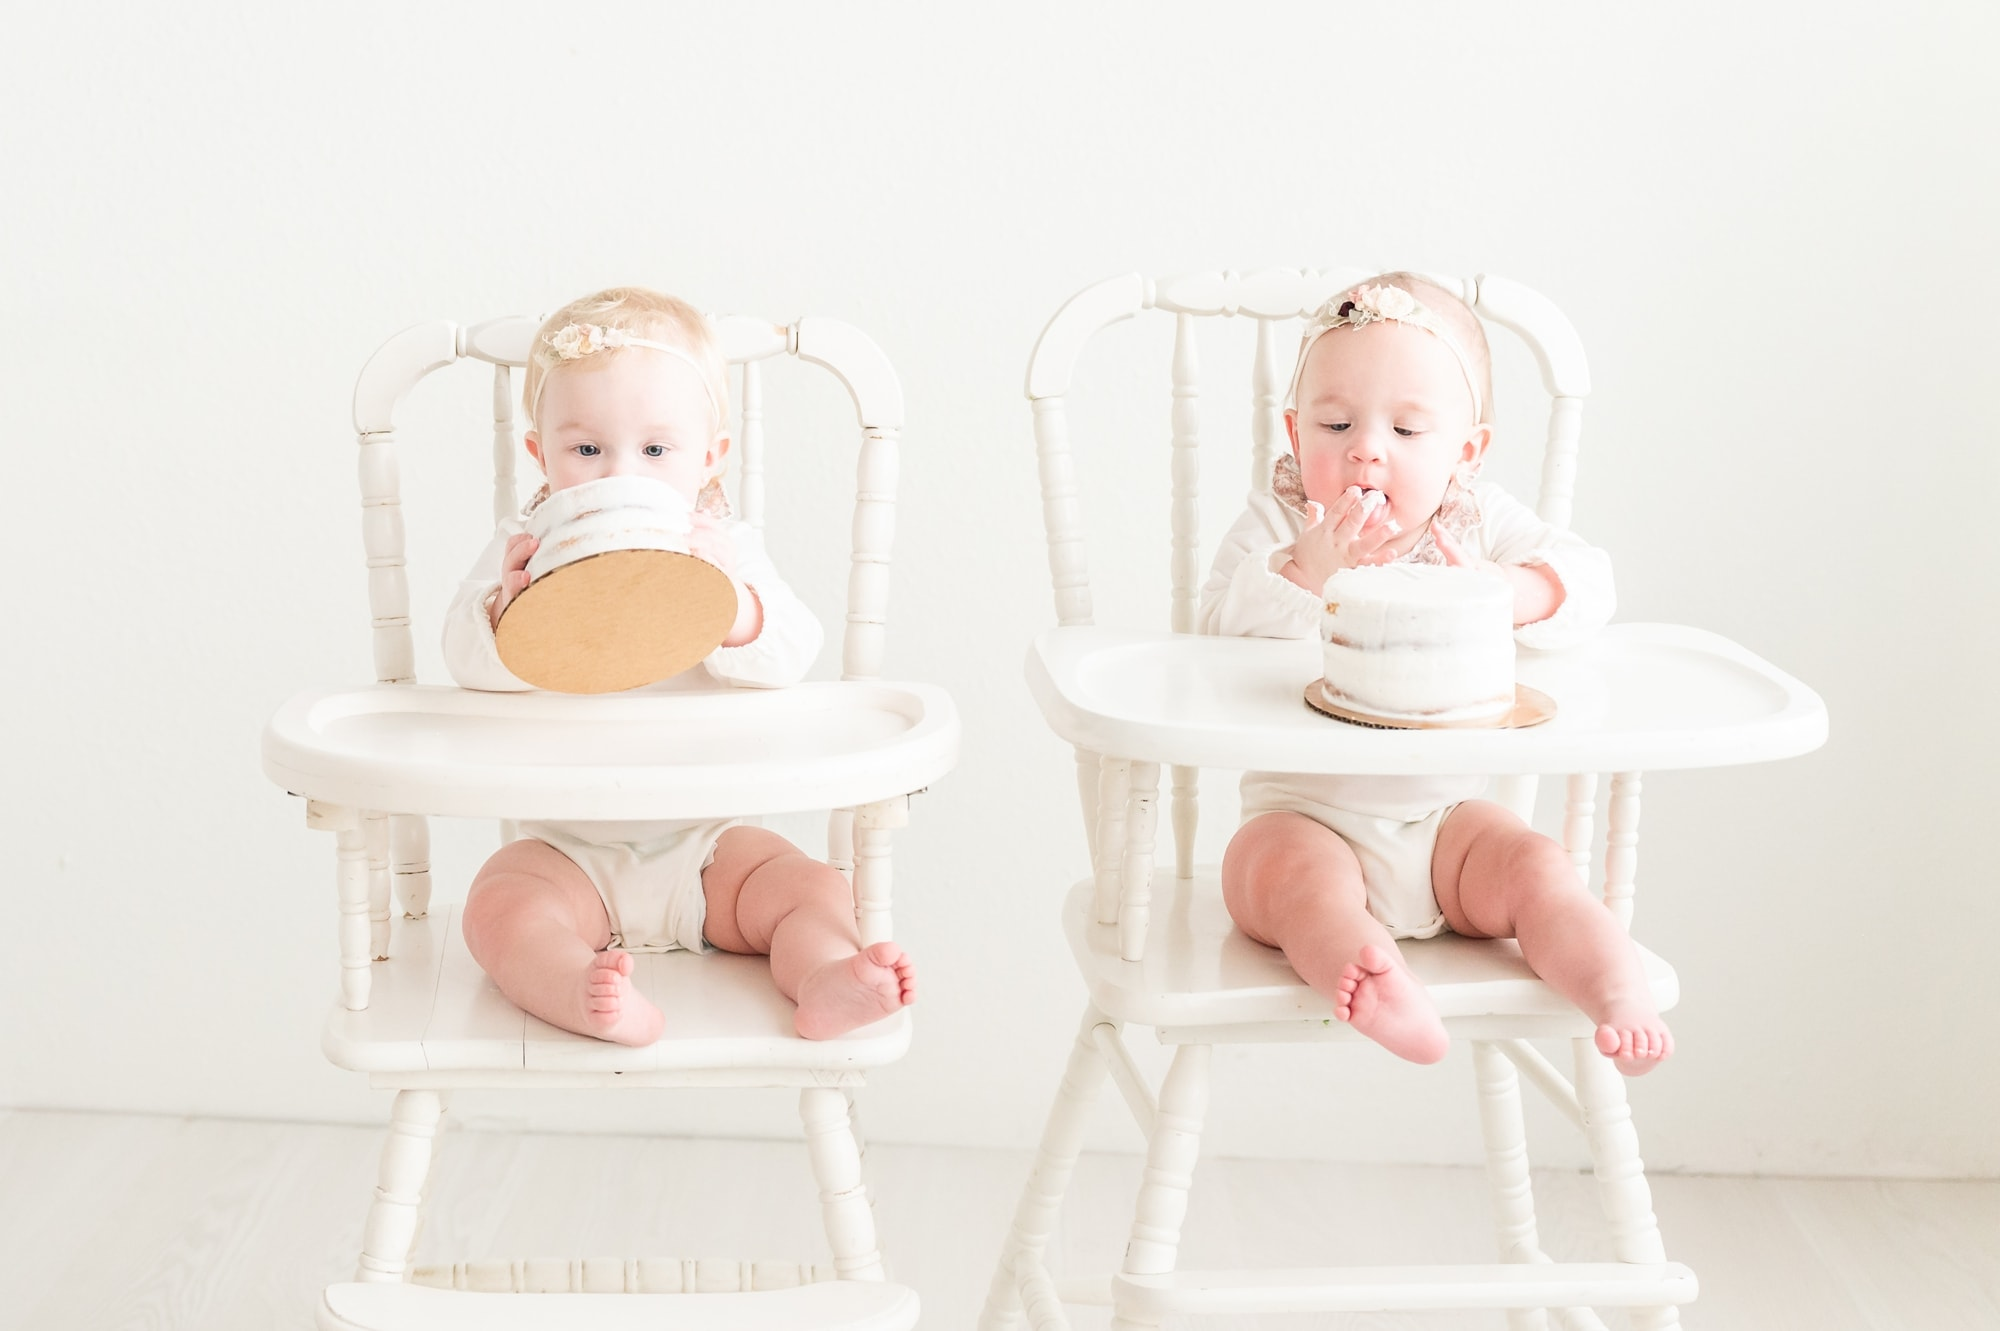 Twins digging into cakes during cake smash session in Dallas studio. Photo by Aimee Hamilton Photography.